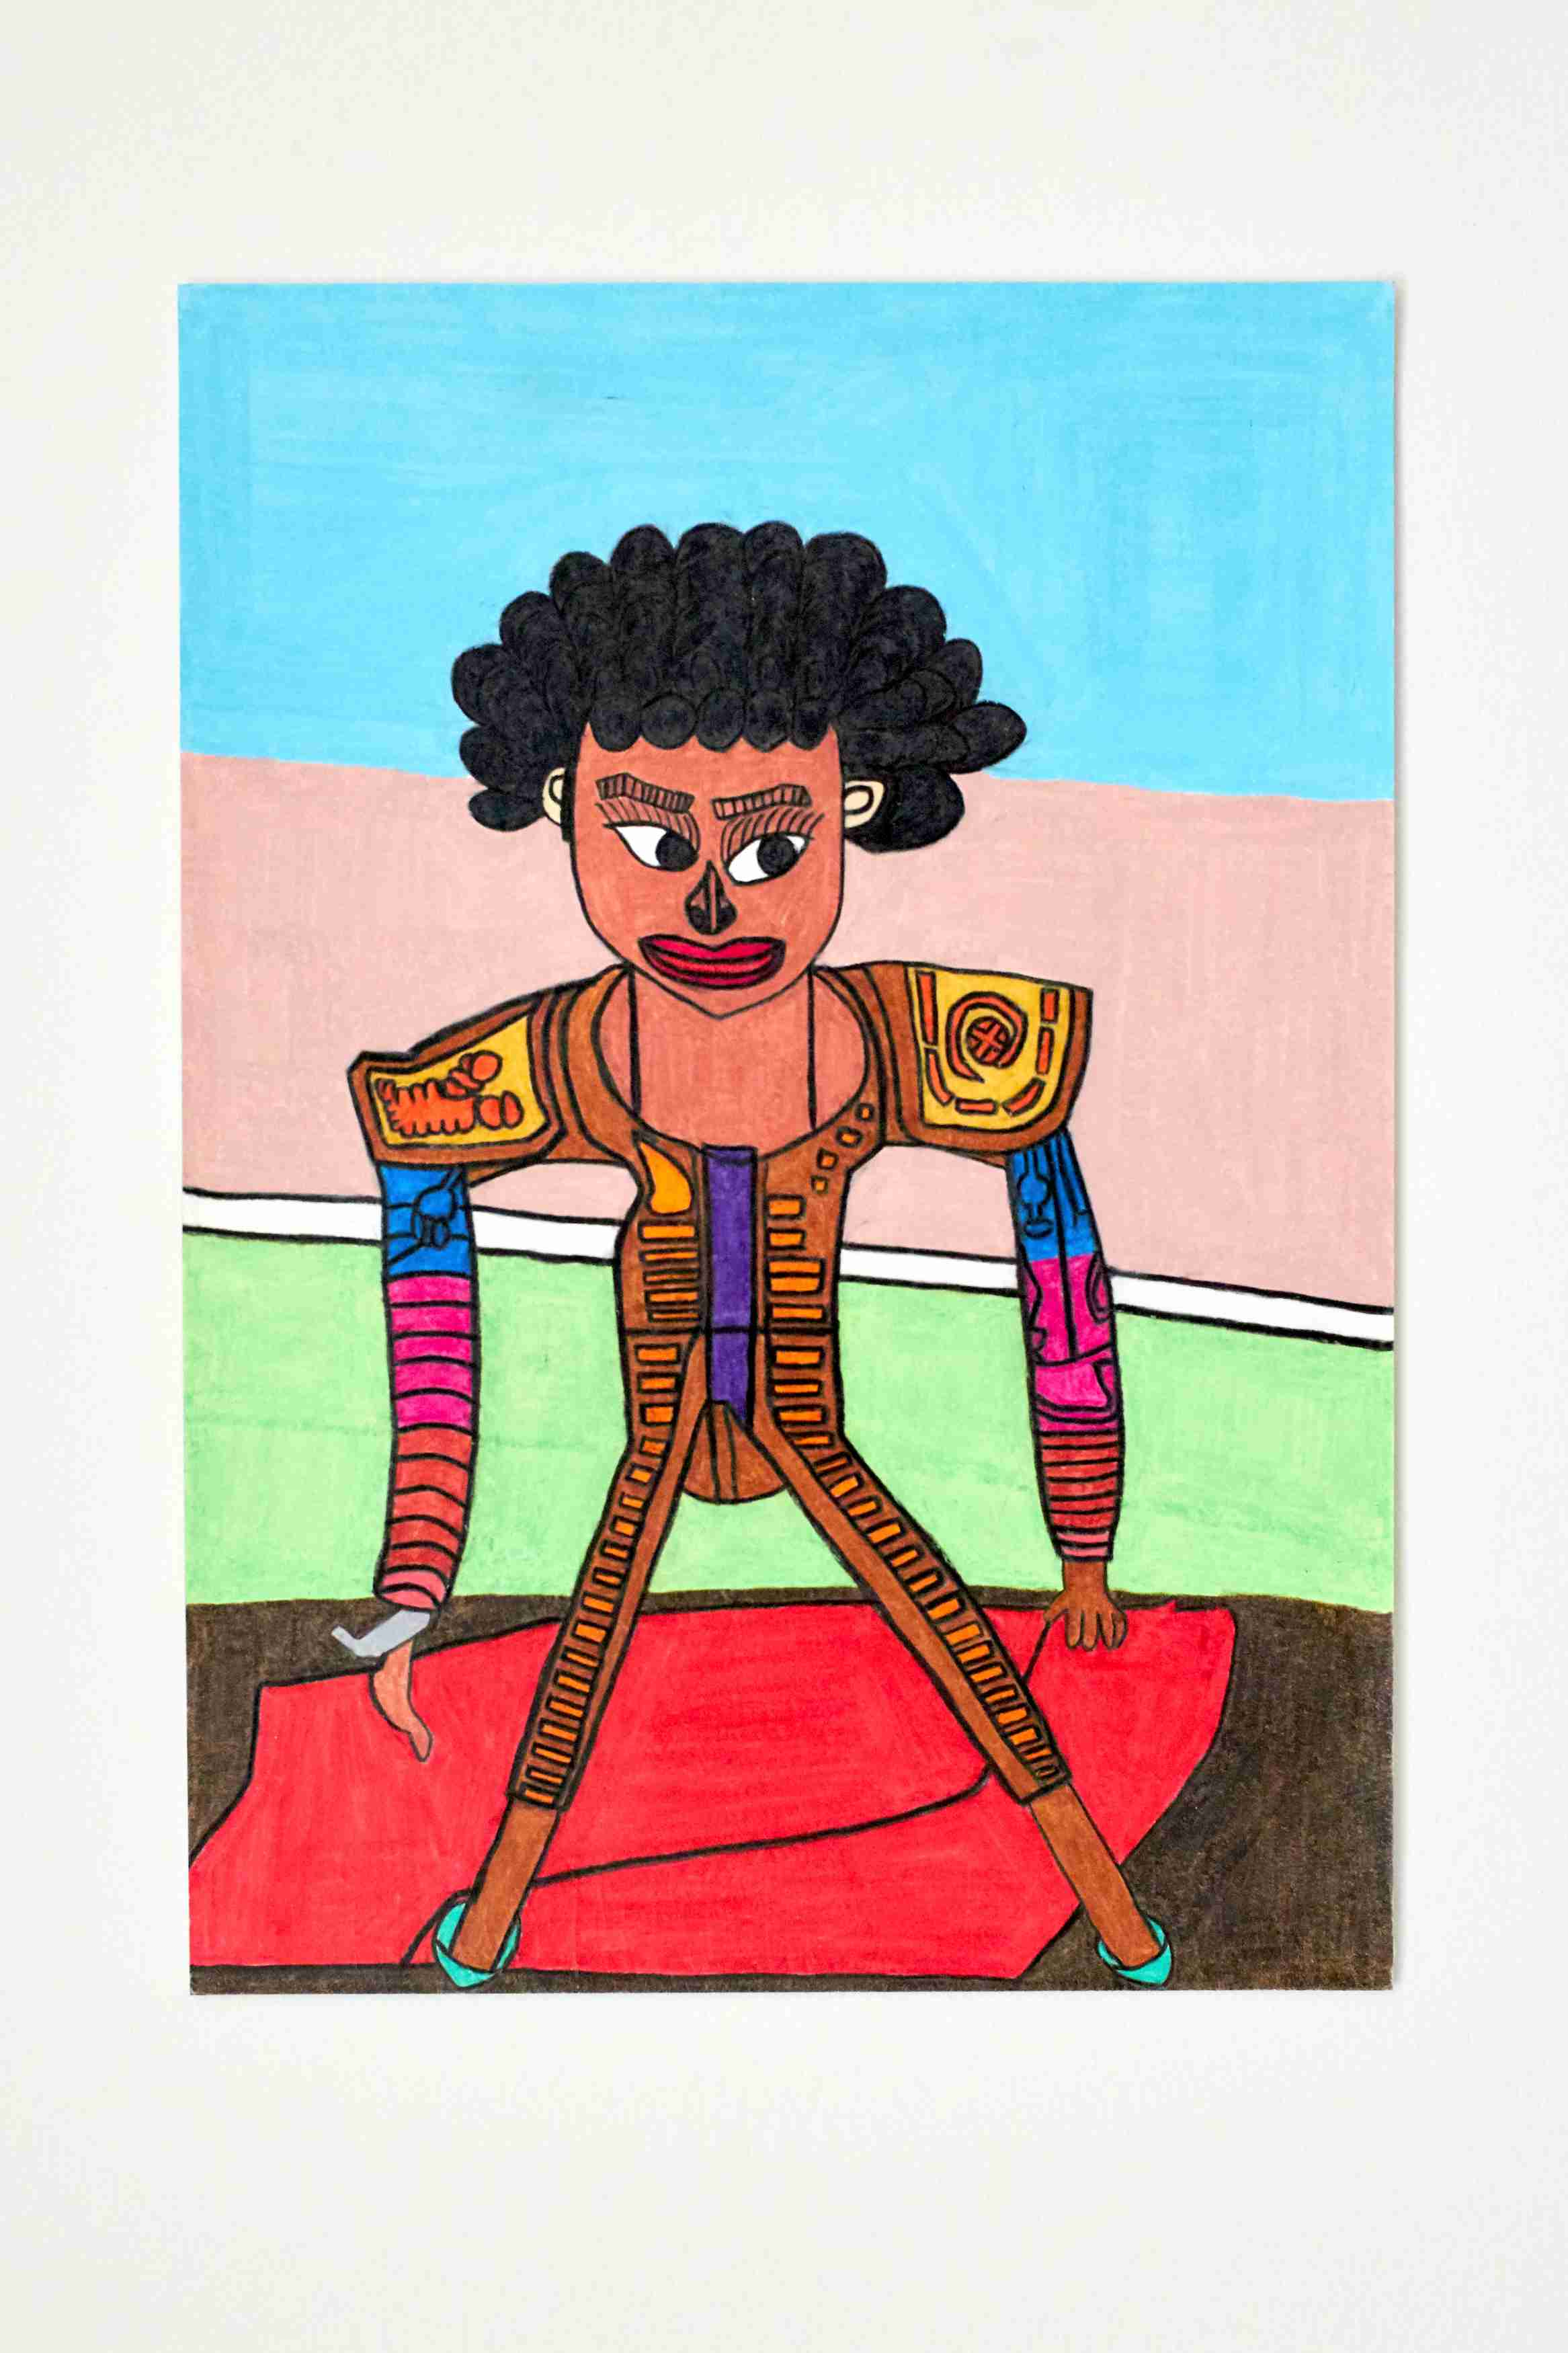 Bullfighter man with a red cloak